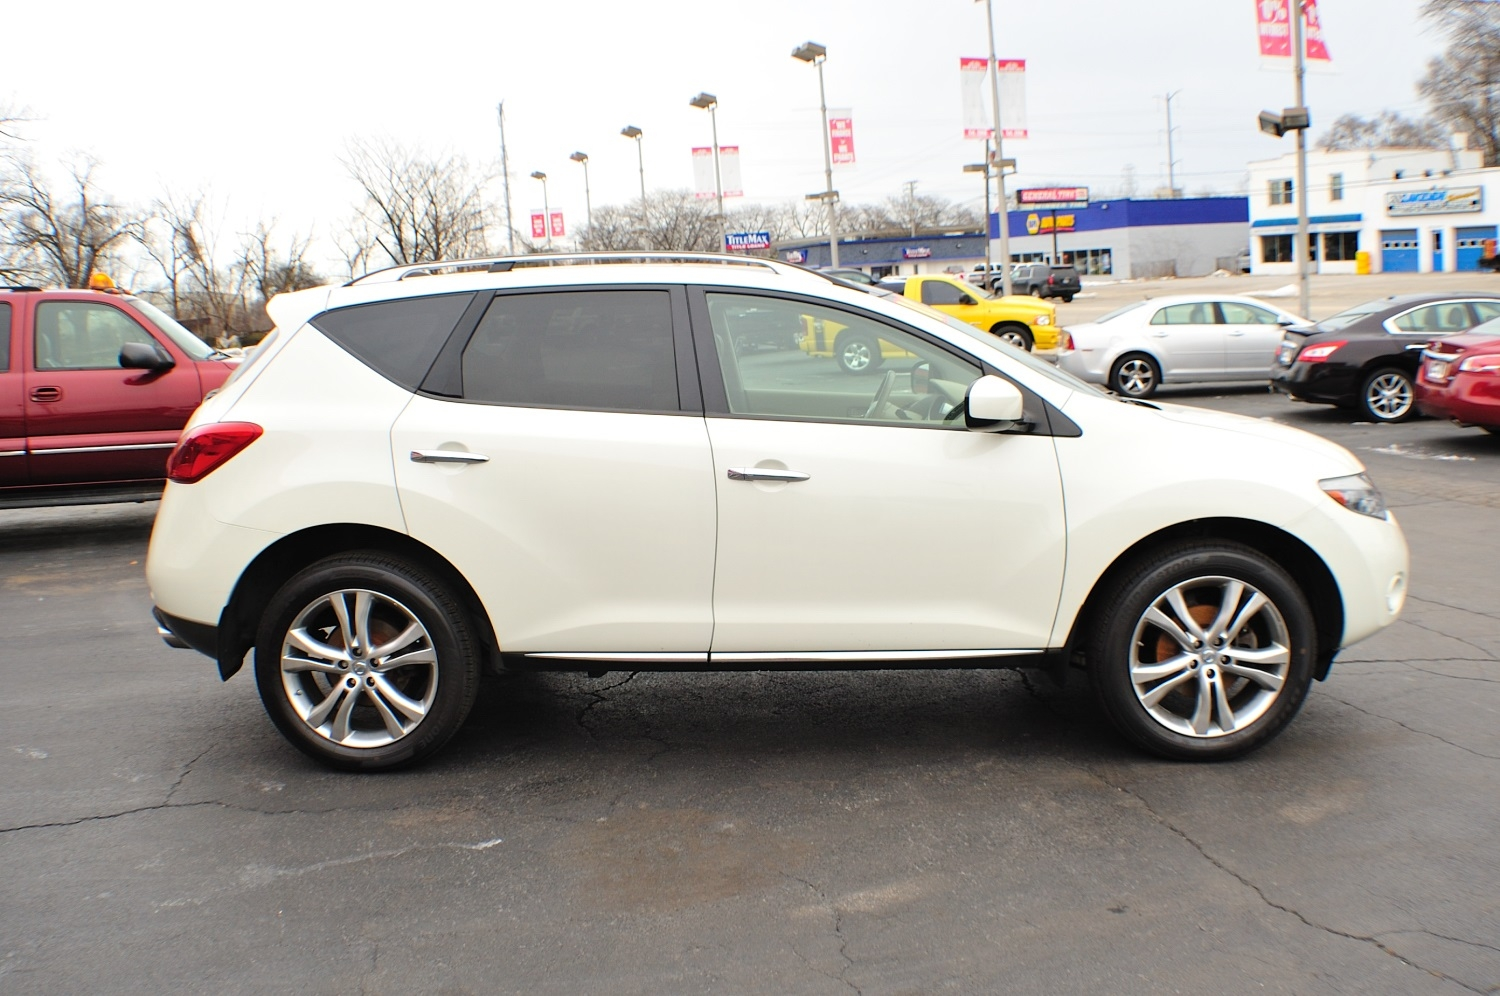 2010 Nissan Murano LE AWD White SUV Sale Bannockburn Barrington Beach Park